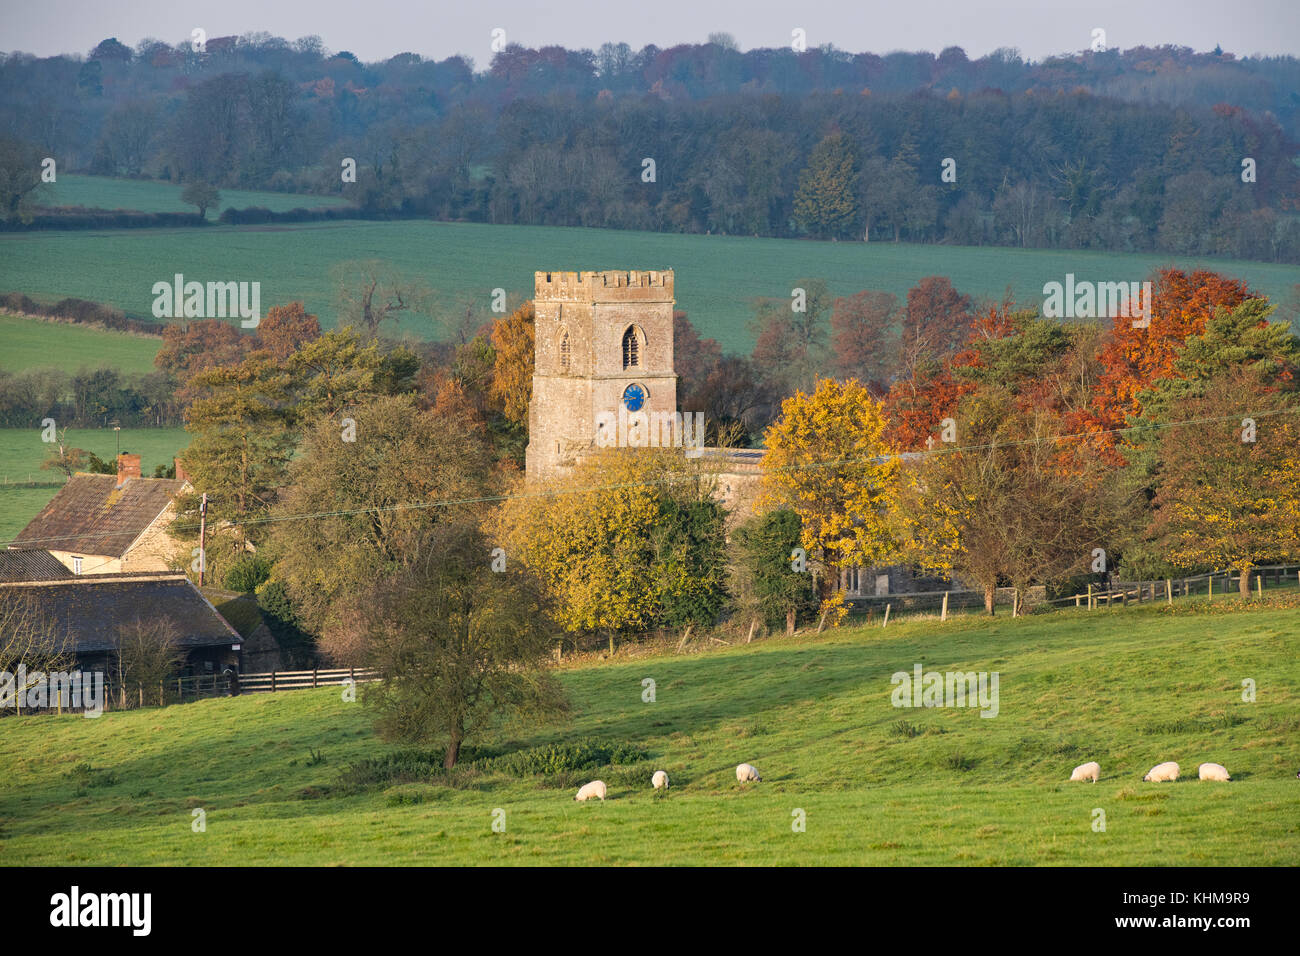 St Marys Church Upper Heyford in autumn. Upper Heyford, Oxfordshire, England - Stock Image